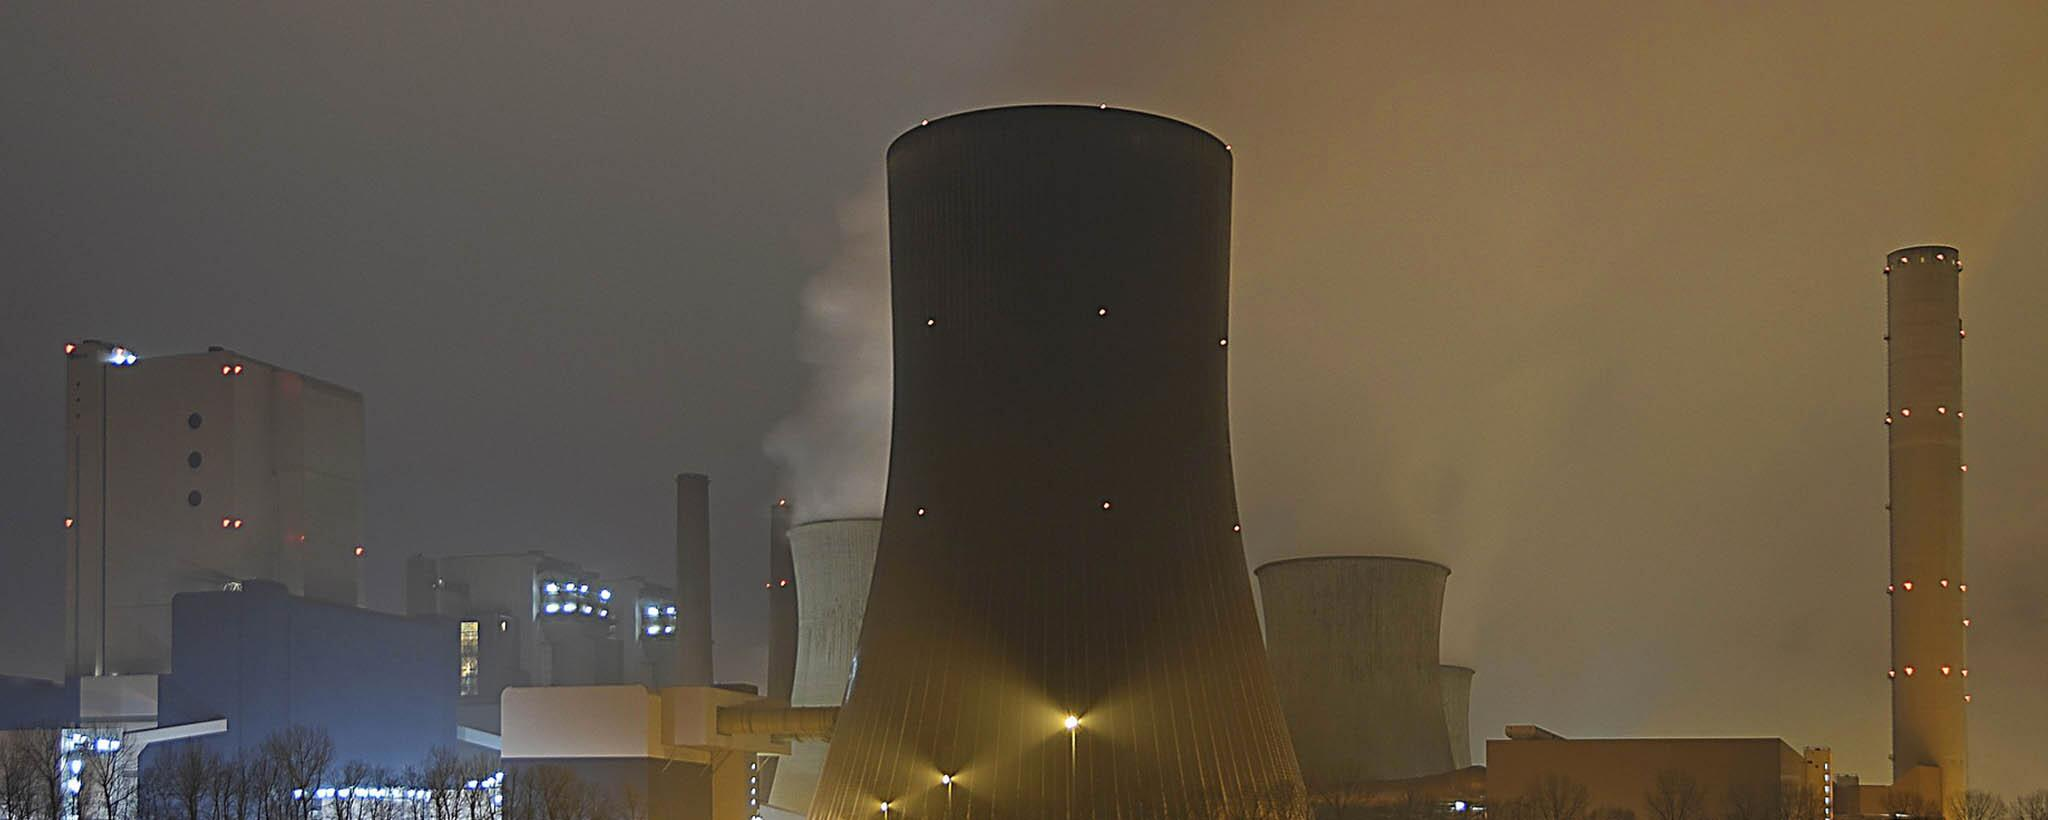 Power Plant Cooling Tower shown at dusk